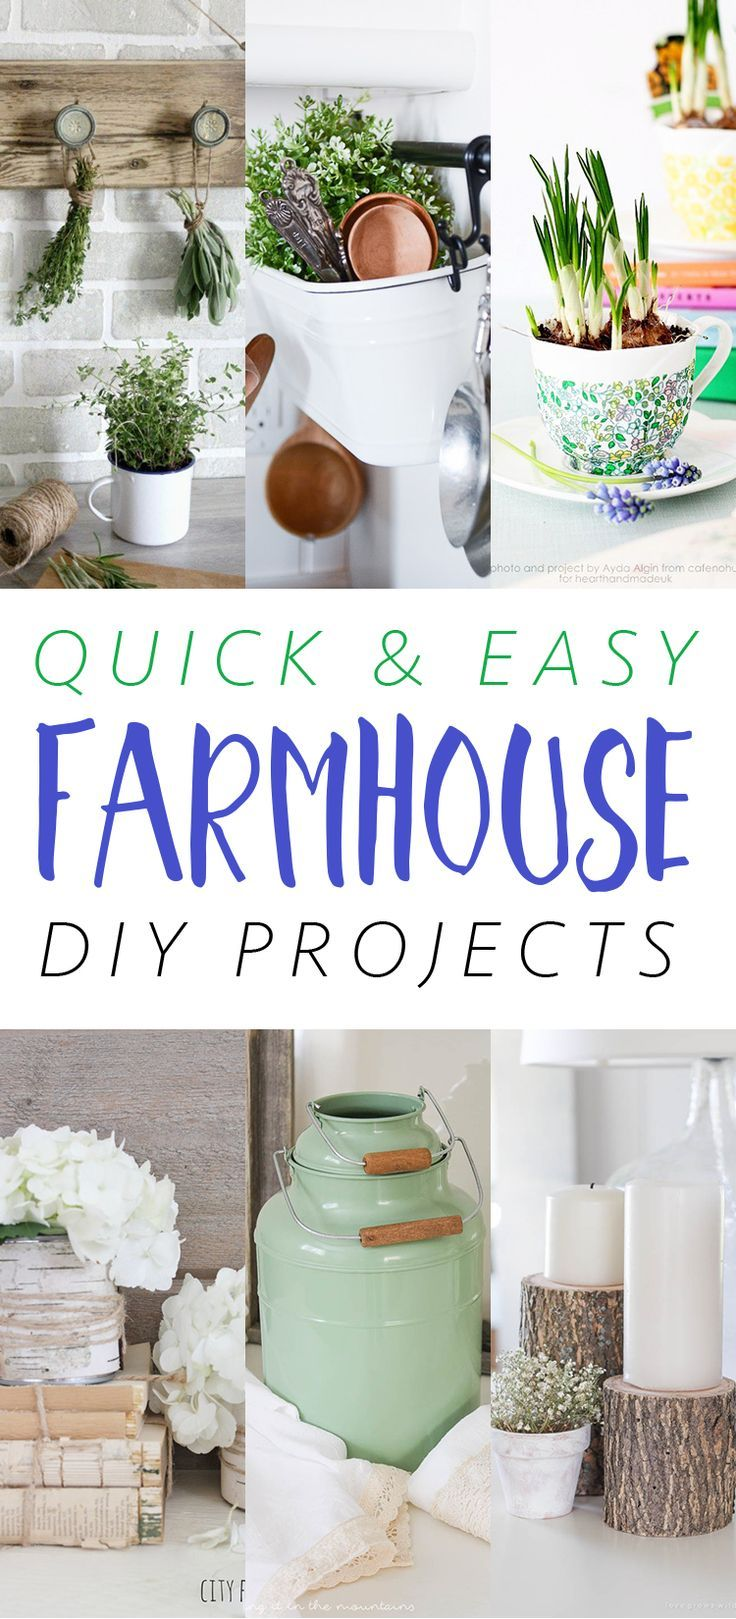 Quick and Easy Farmhouse DIY Projects - The Cottage Market